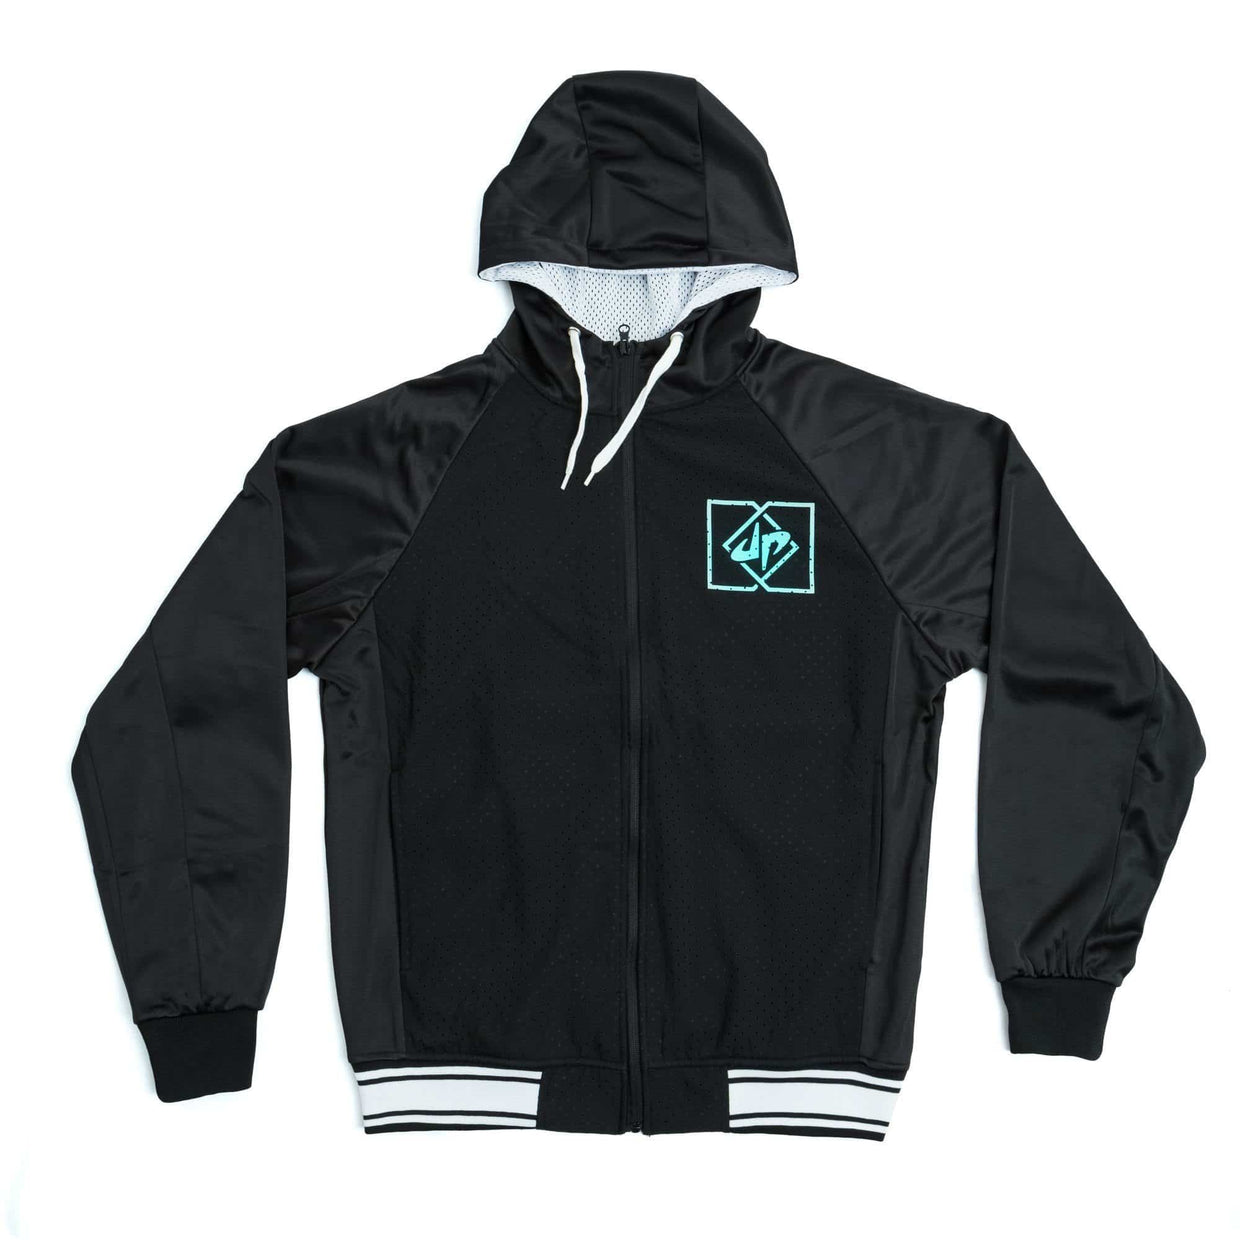 Authentic Varsity Tech Jacket